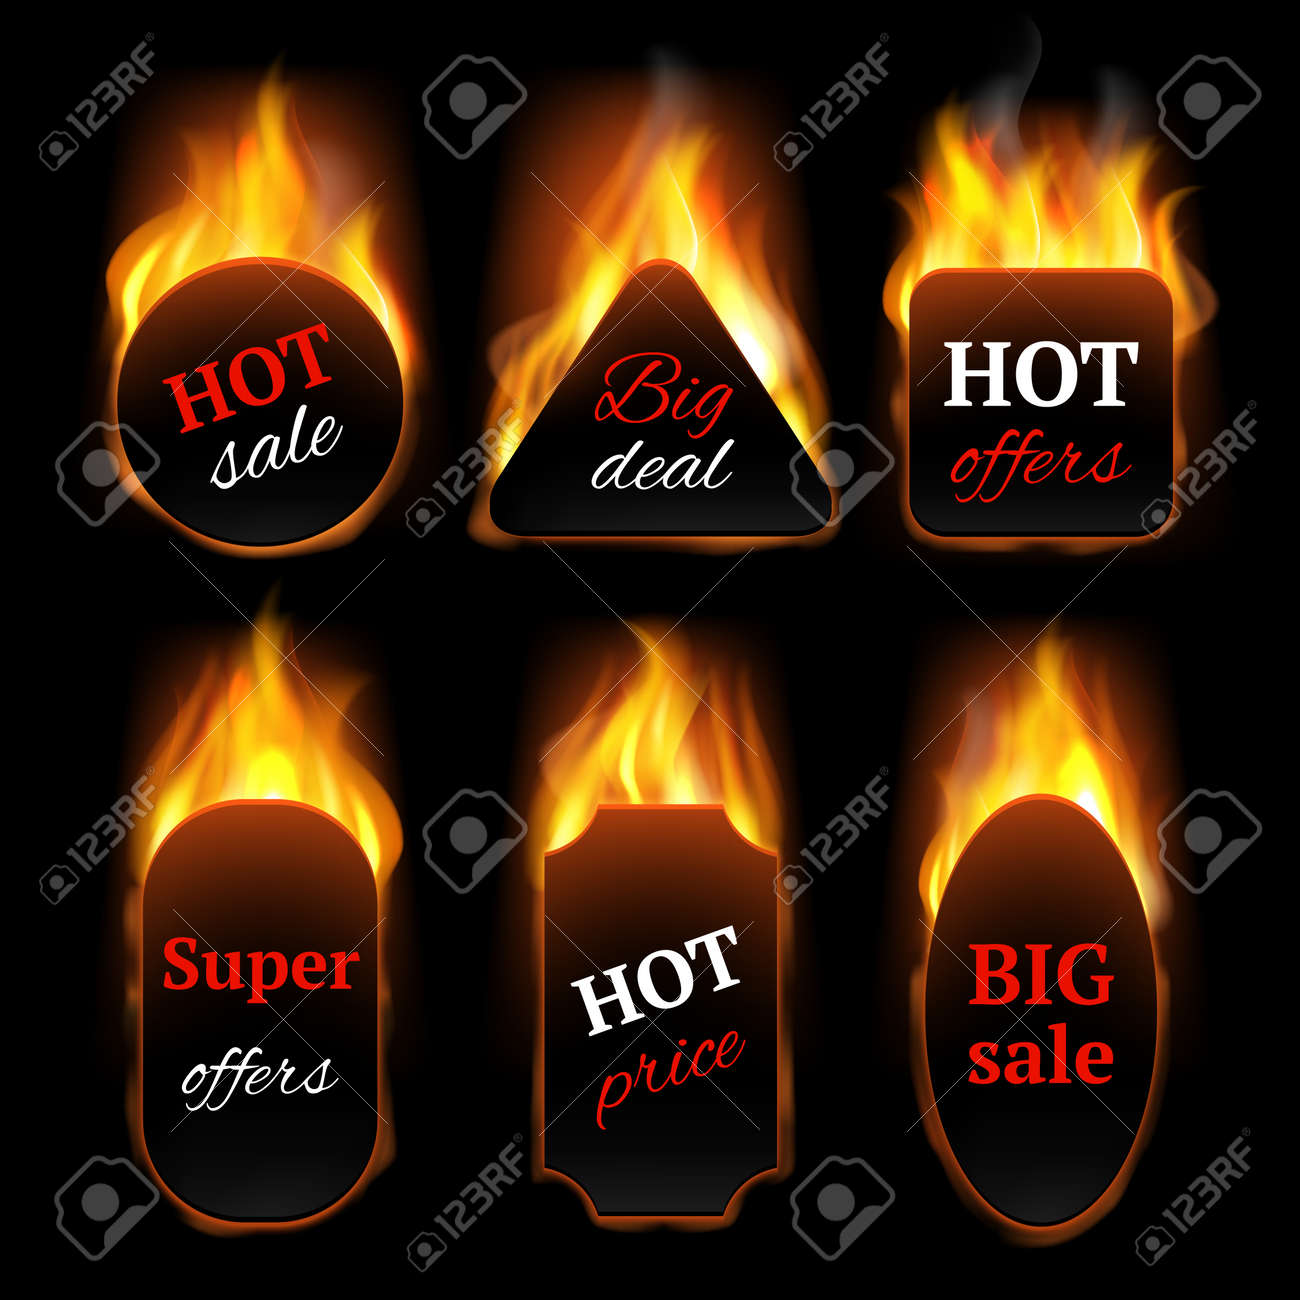 Hot special offers. Promo banners with fire flame vector realistic templates. Illustration hot offer and fire sale, flame discount, advertising clearance black promo sale - 156950612